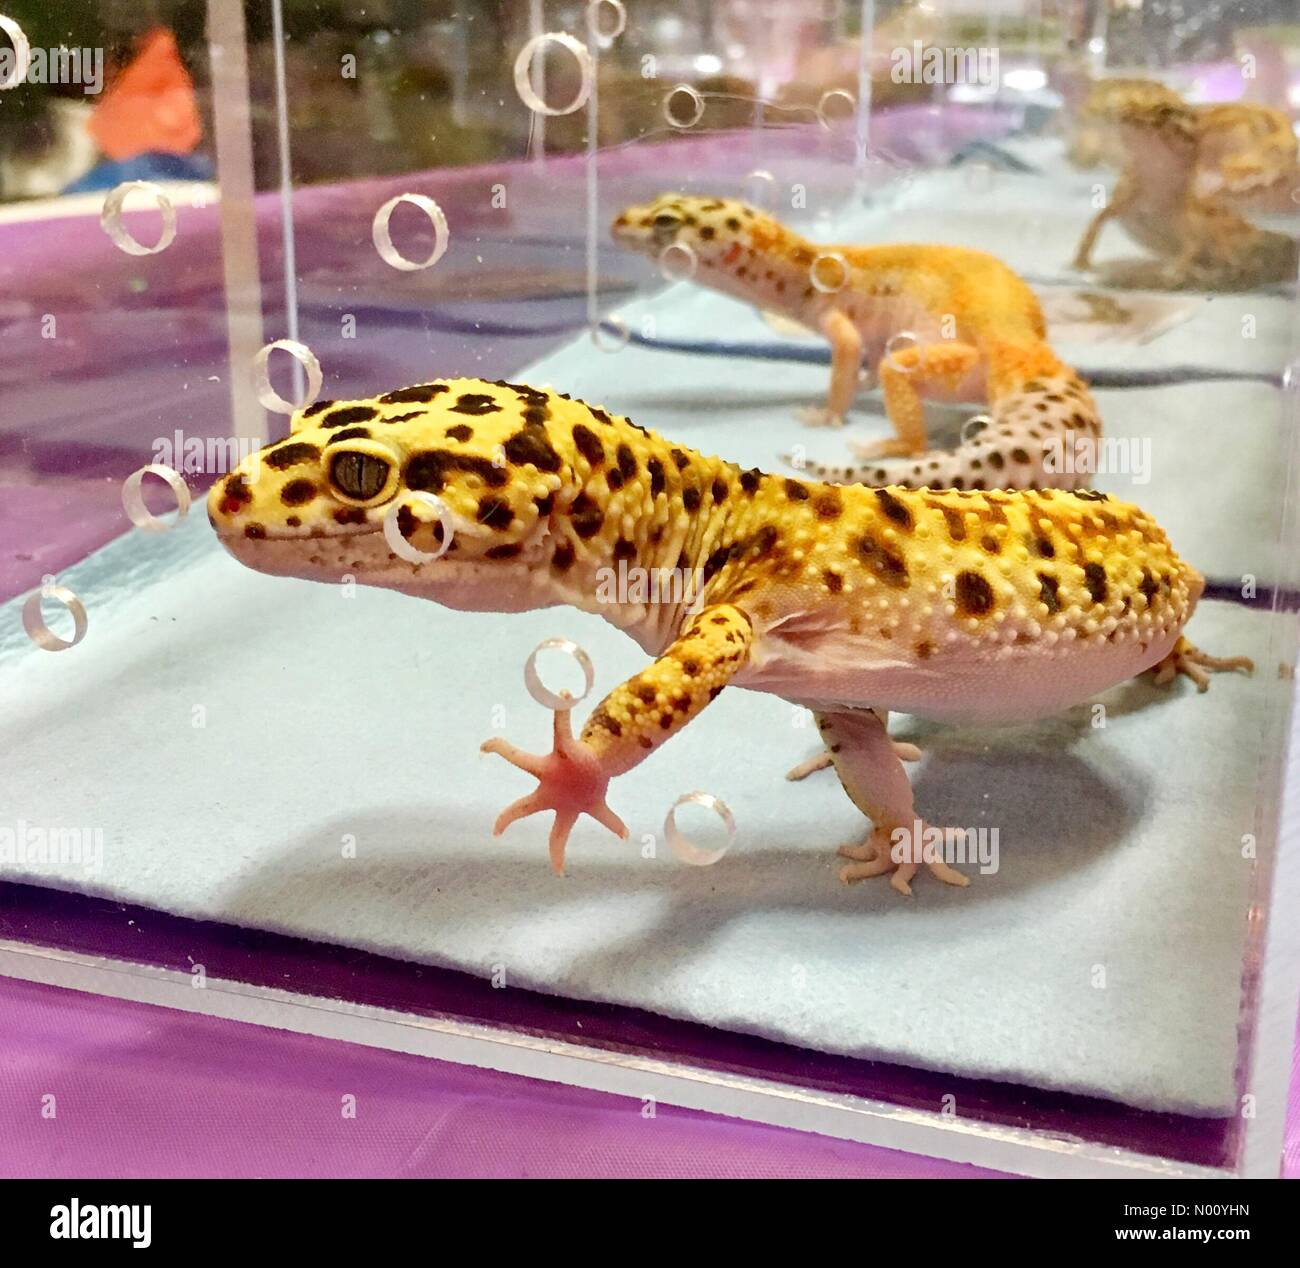 Pet Expo Stock Photos & Pet Expo Stock Images - Page 3 - Alamy